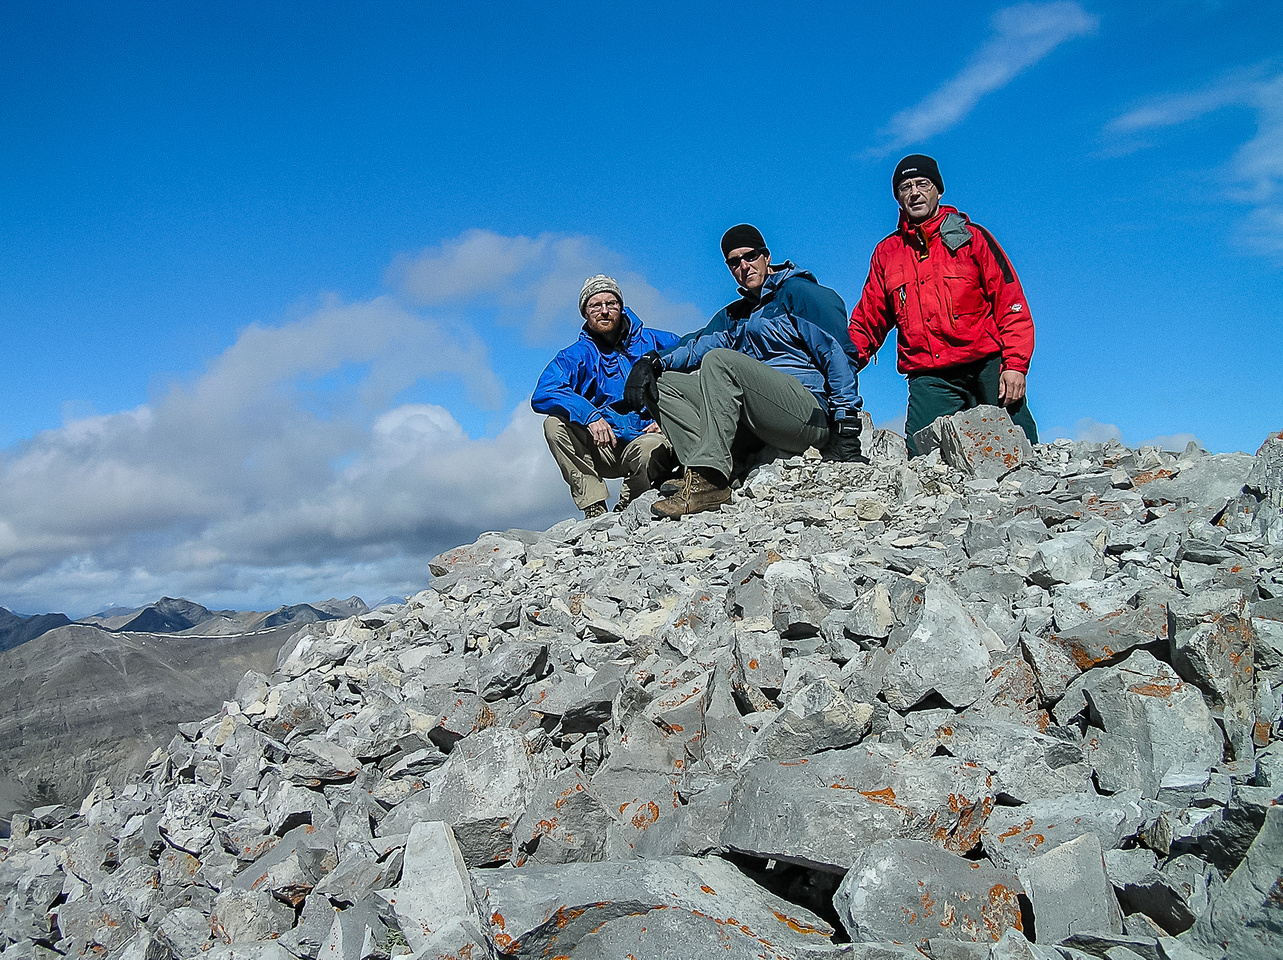 Ed, Vern and Dave on the summit of Mount Fullerton.